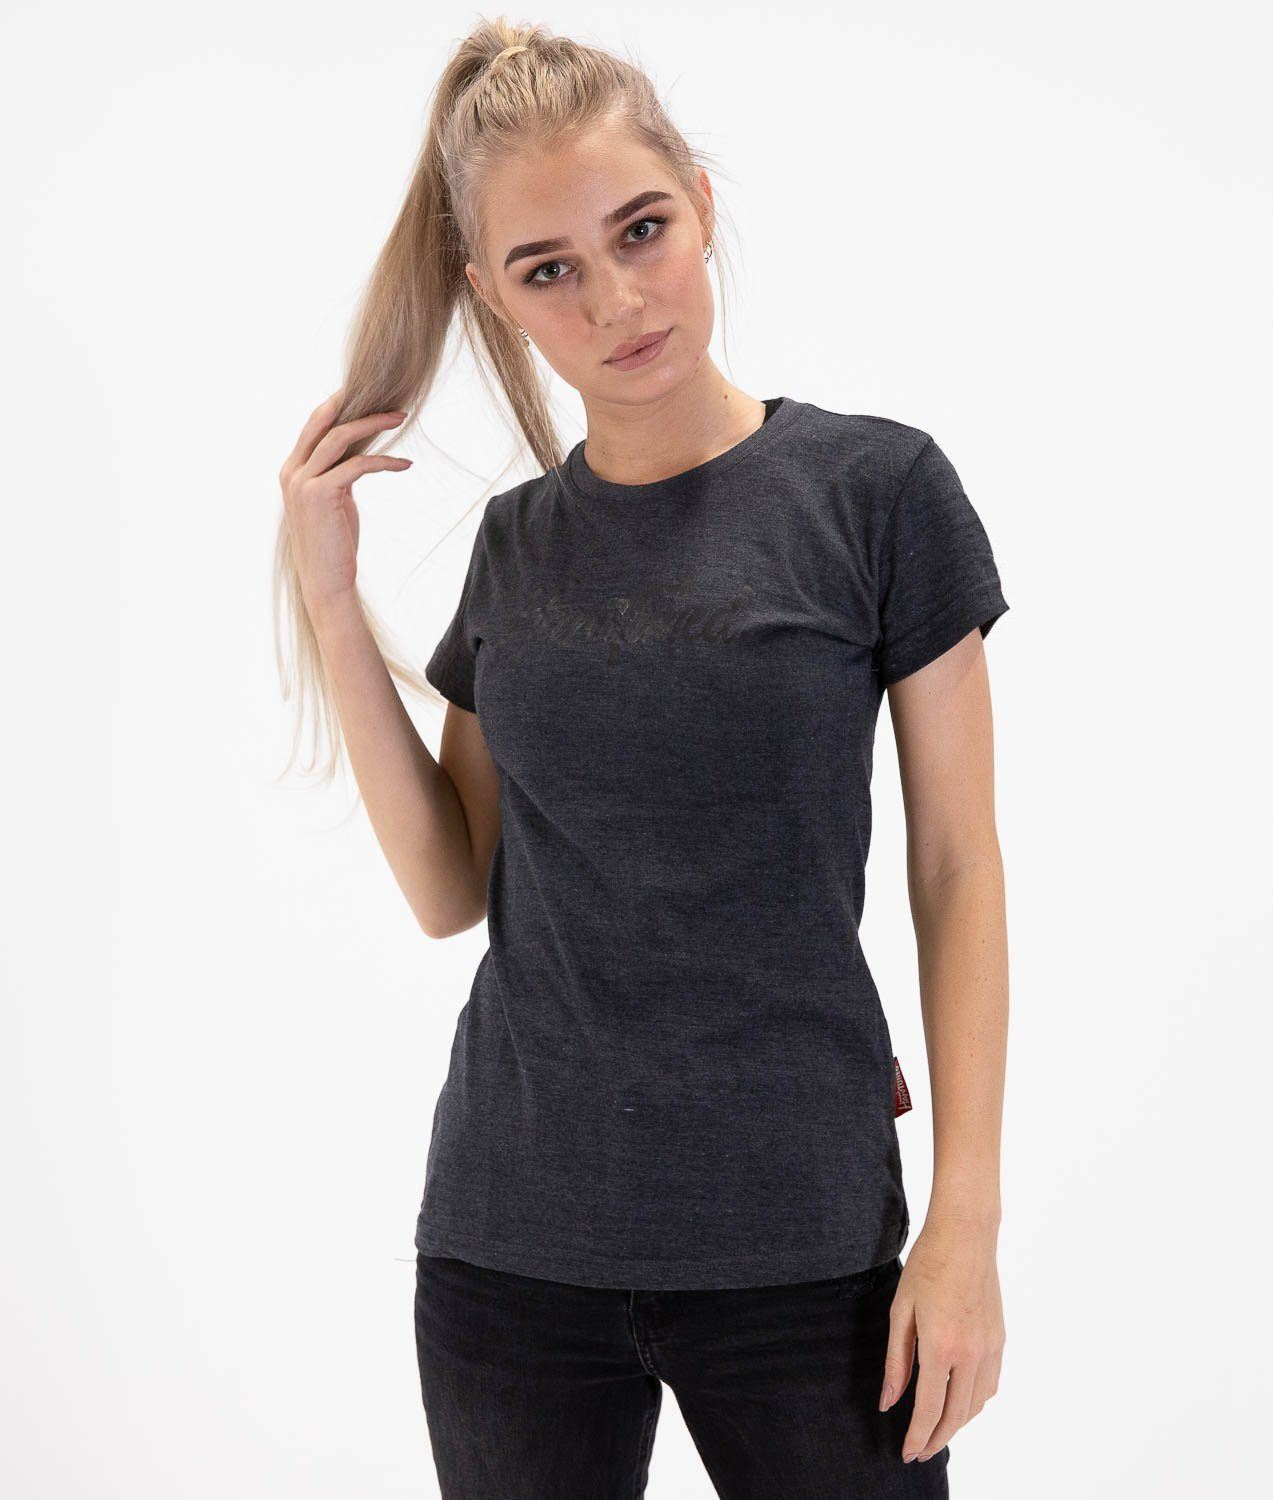 Tee - HardTuned Brush Womens Tee - Charcoal